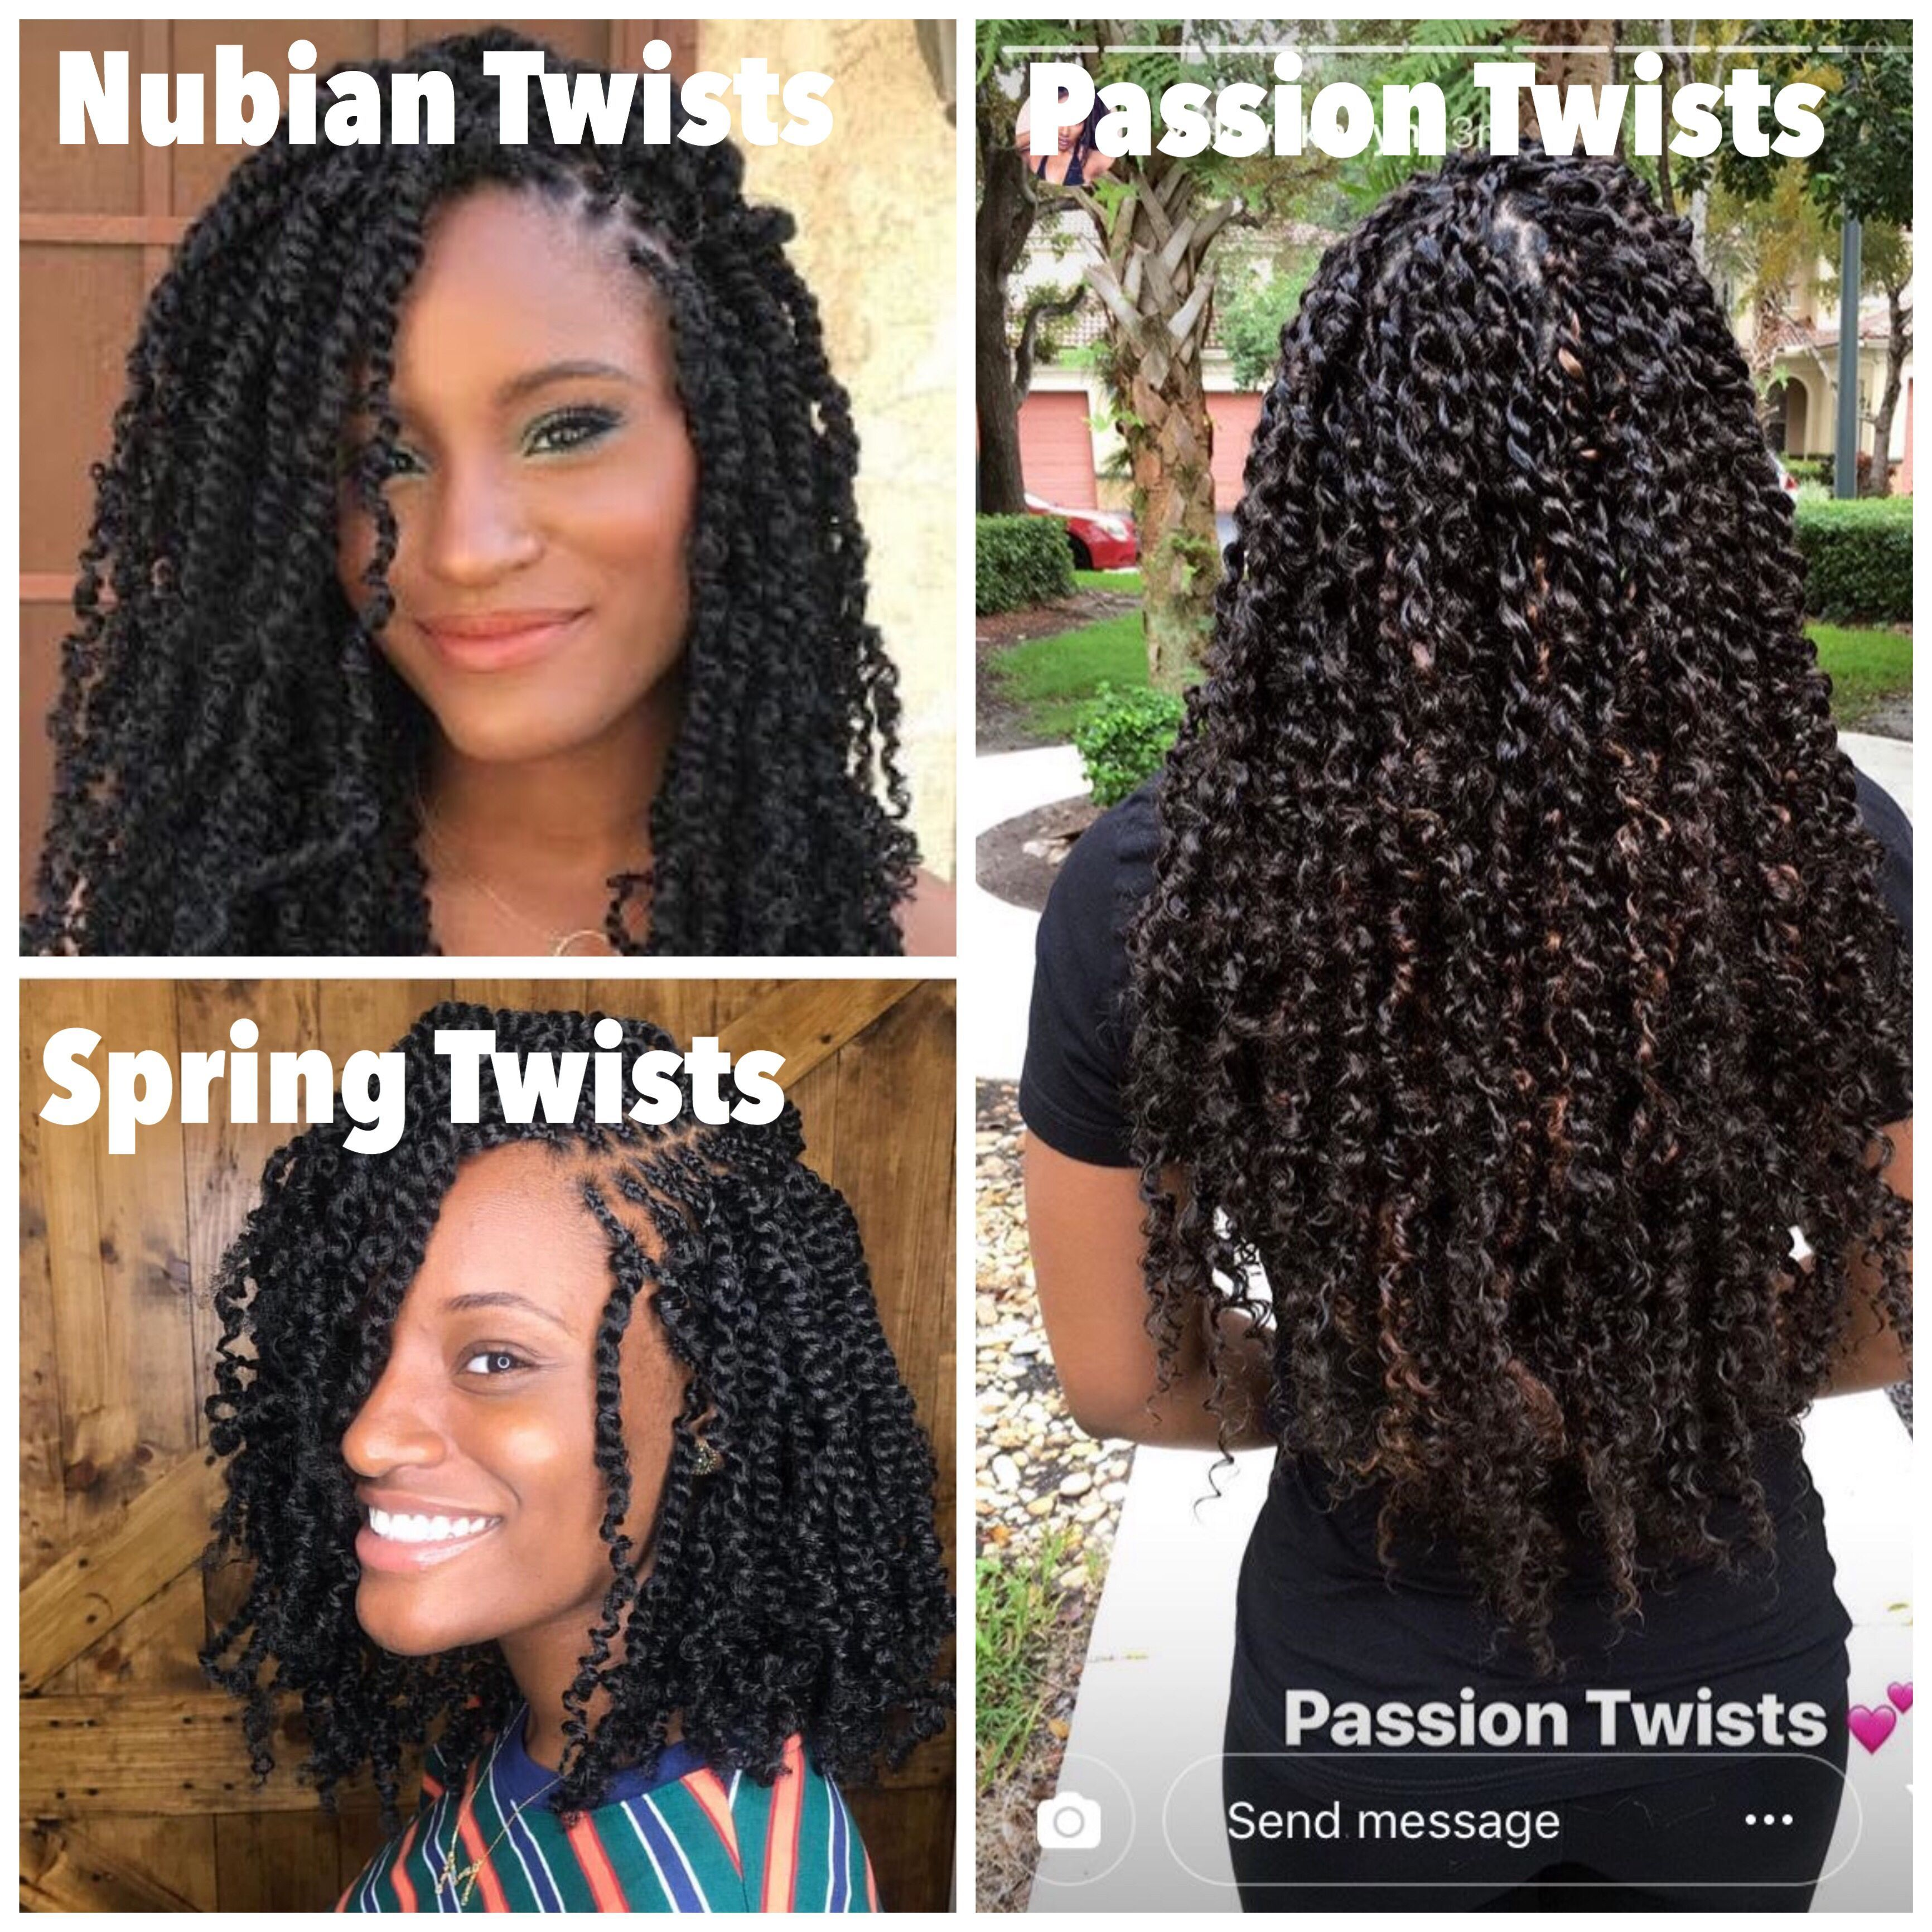 Passion Twists vs Spring Twists follow @shugabraids on IG #passiontwistshairstyle Passion Twists vs